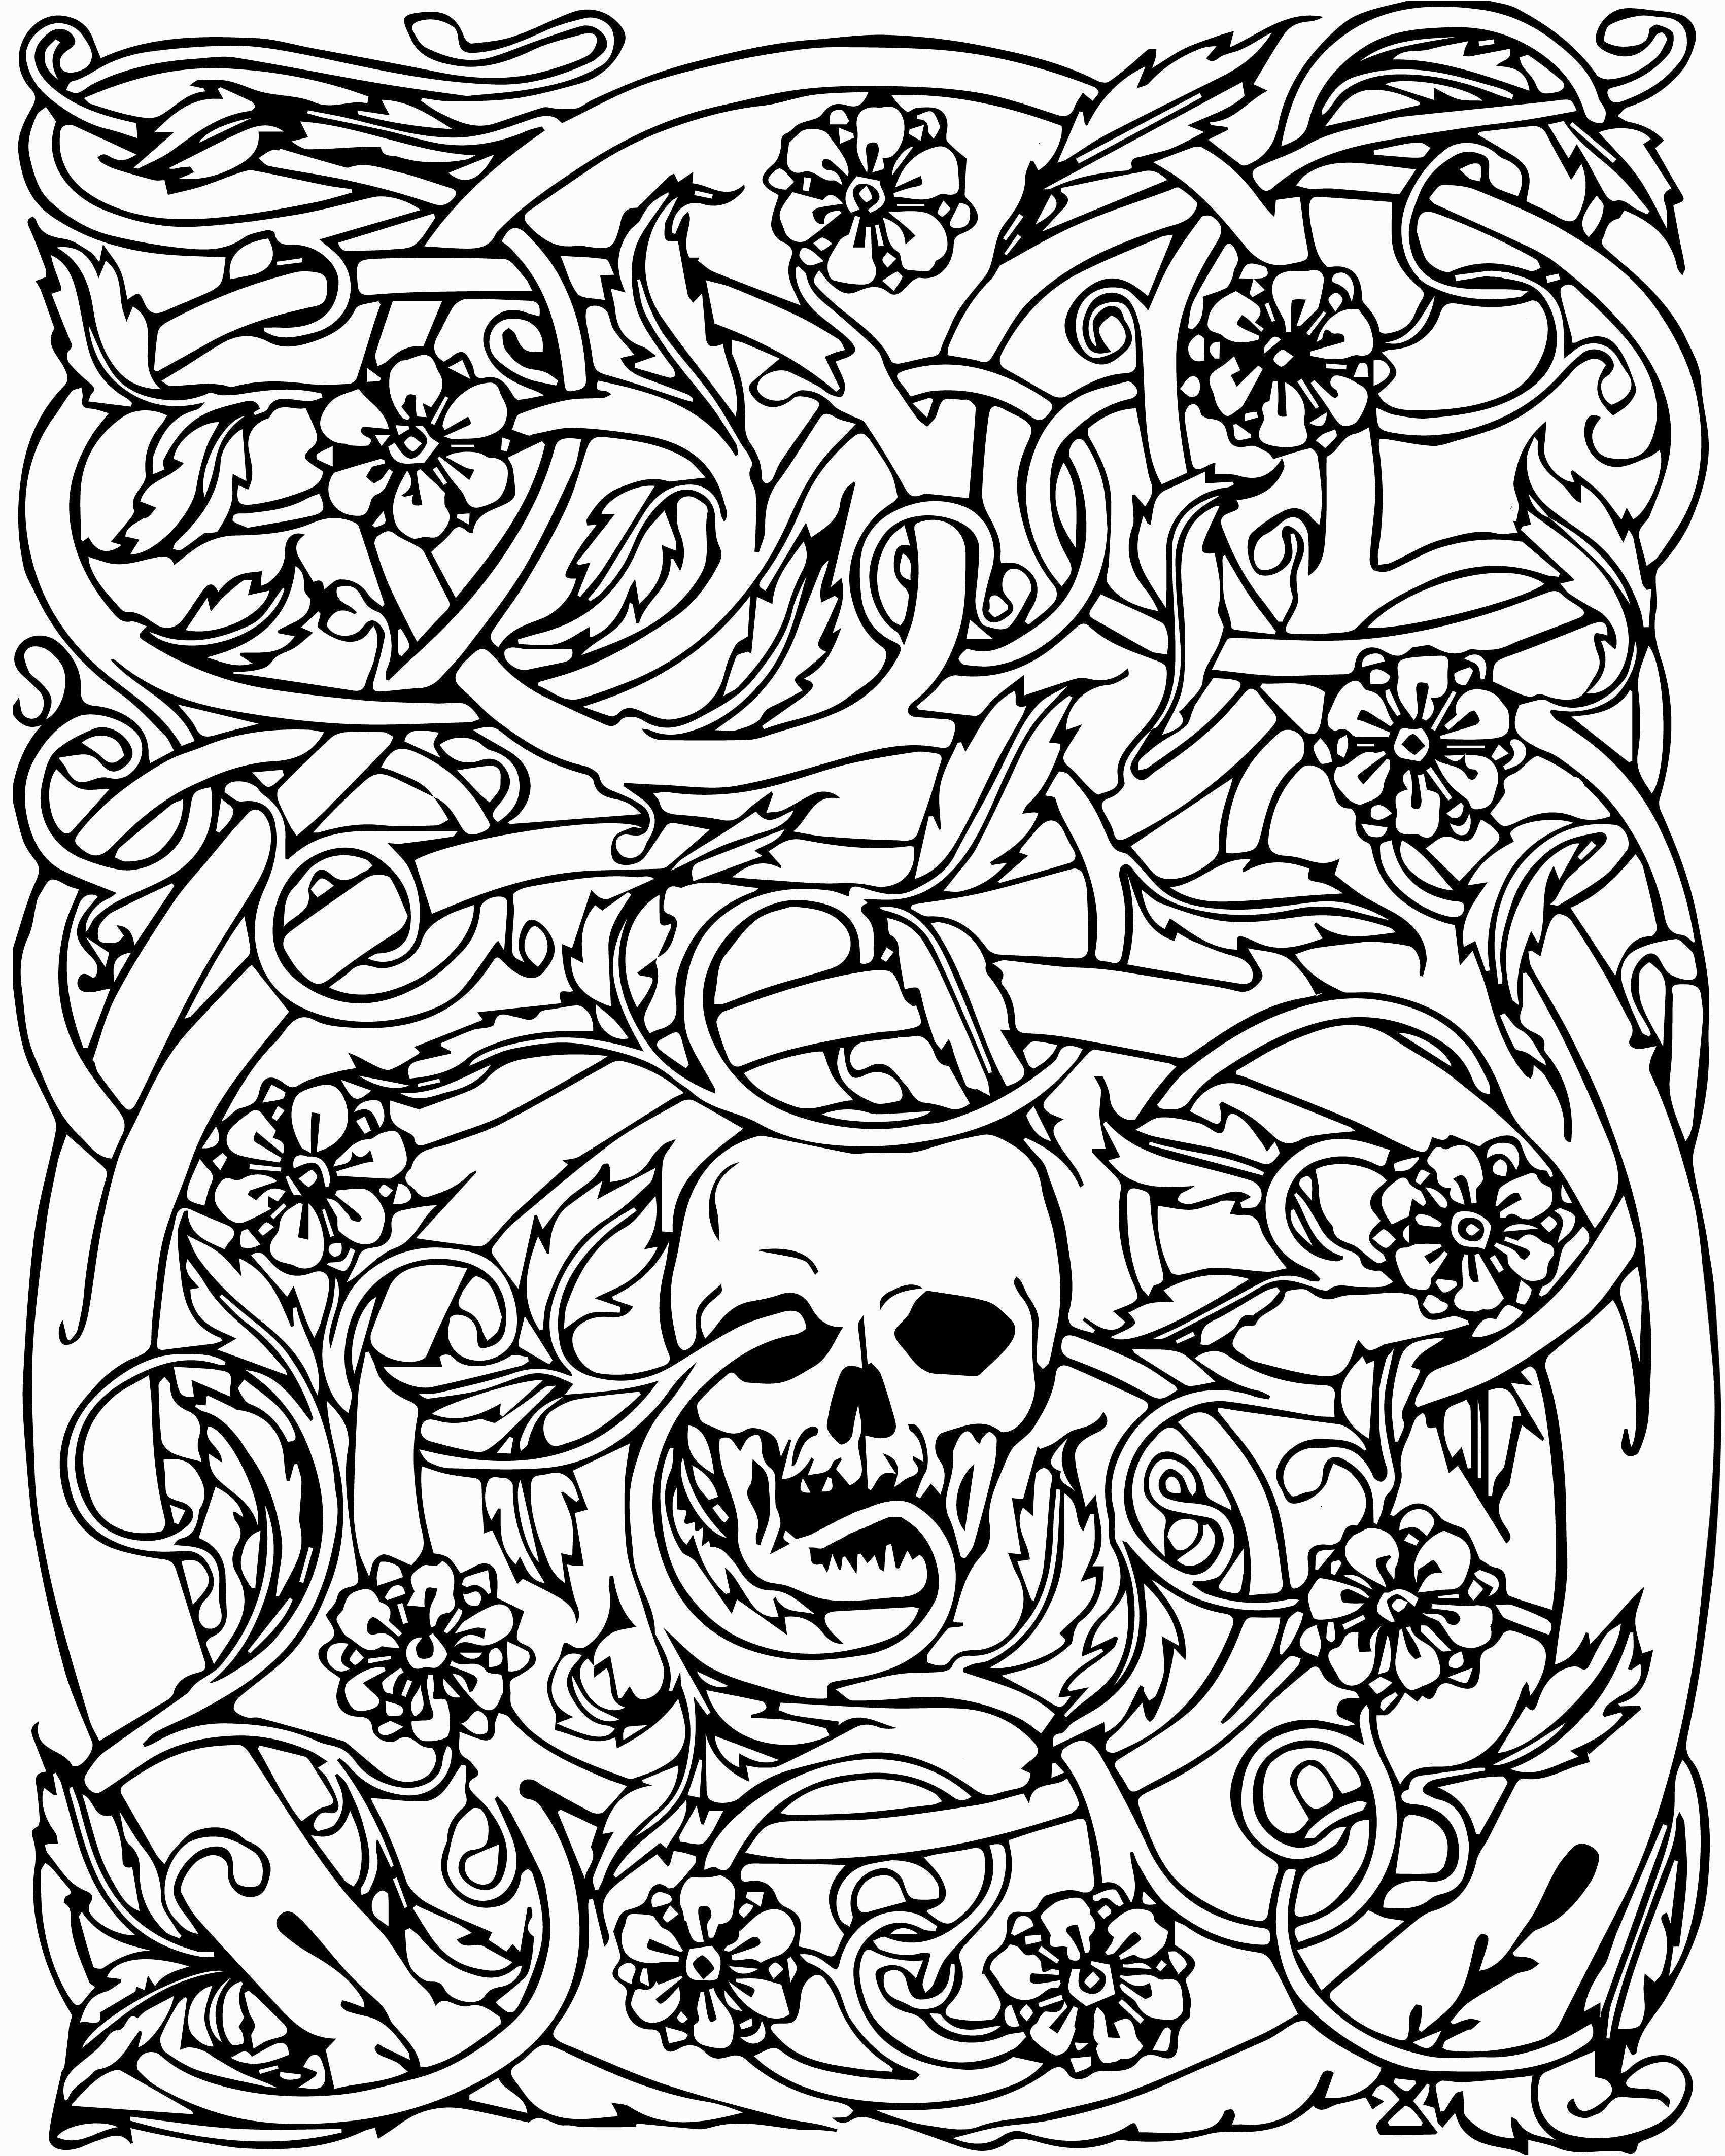 Disney Halloween Coloring Pages Inspirational Coloring Coloring Free Halloween Skull Coloring Pages Halloween Coloring Book Halloween Coloring Pages Printable